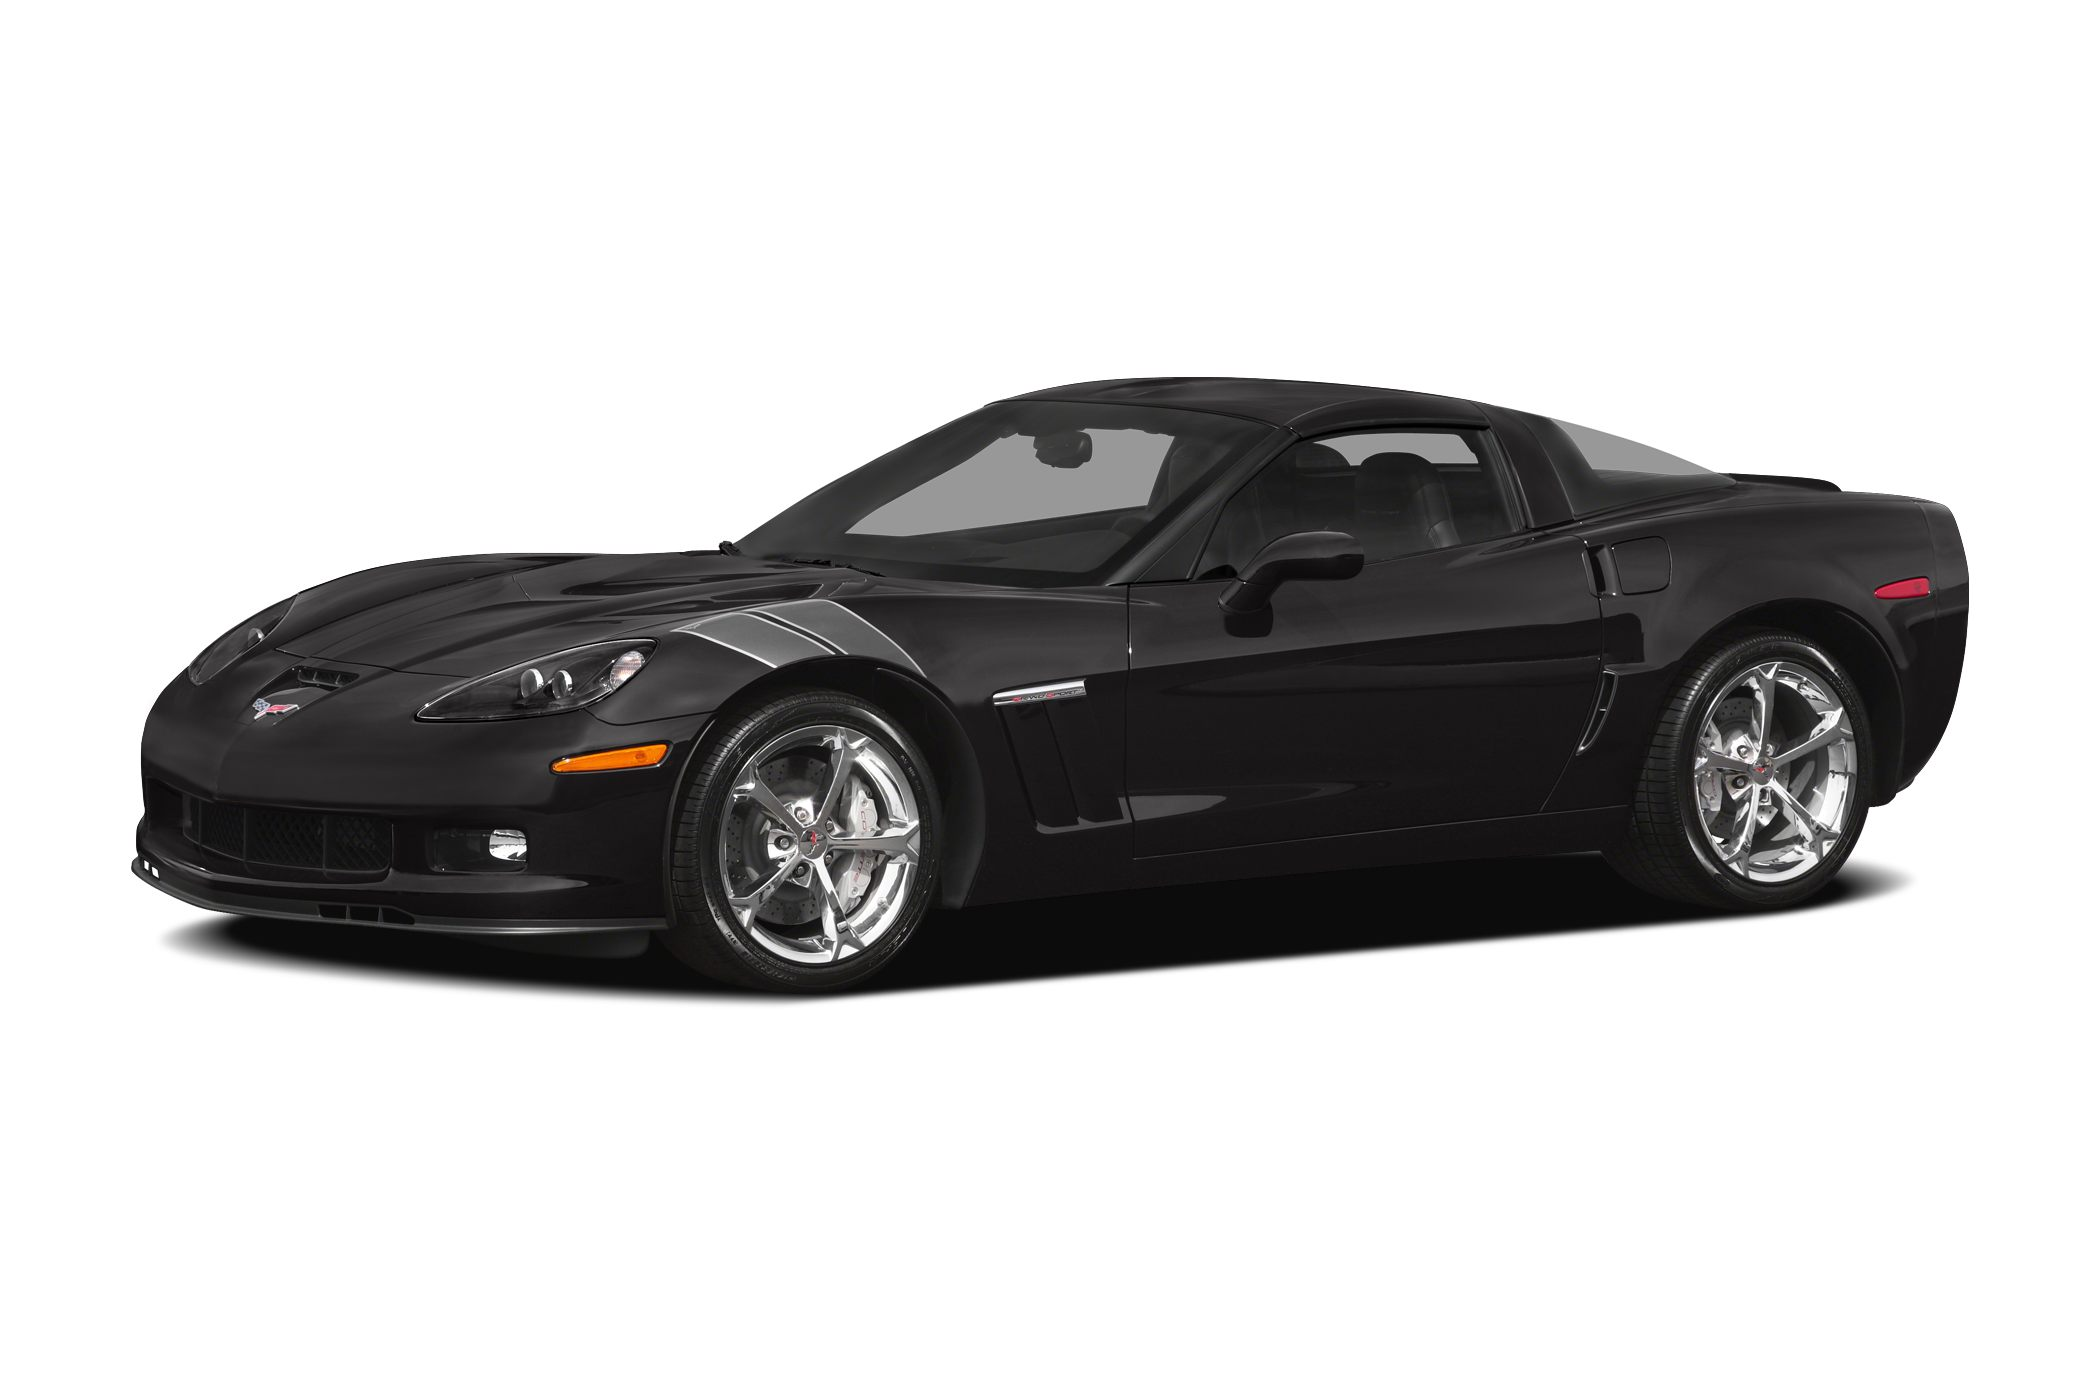 2011 Chevrolet Corvette Grand Sport Coupe for sale in Stroudsburg for $47,879 with 0 miles